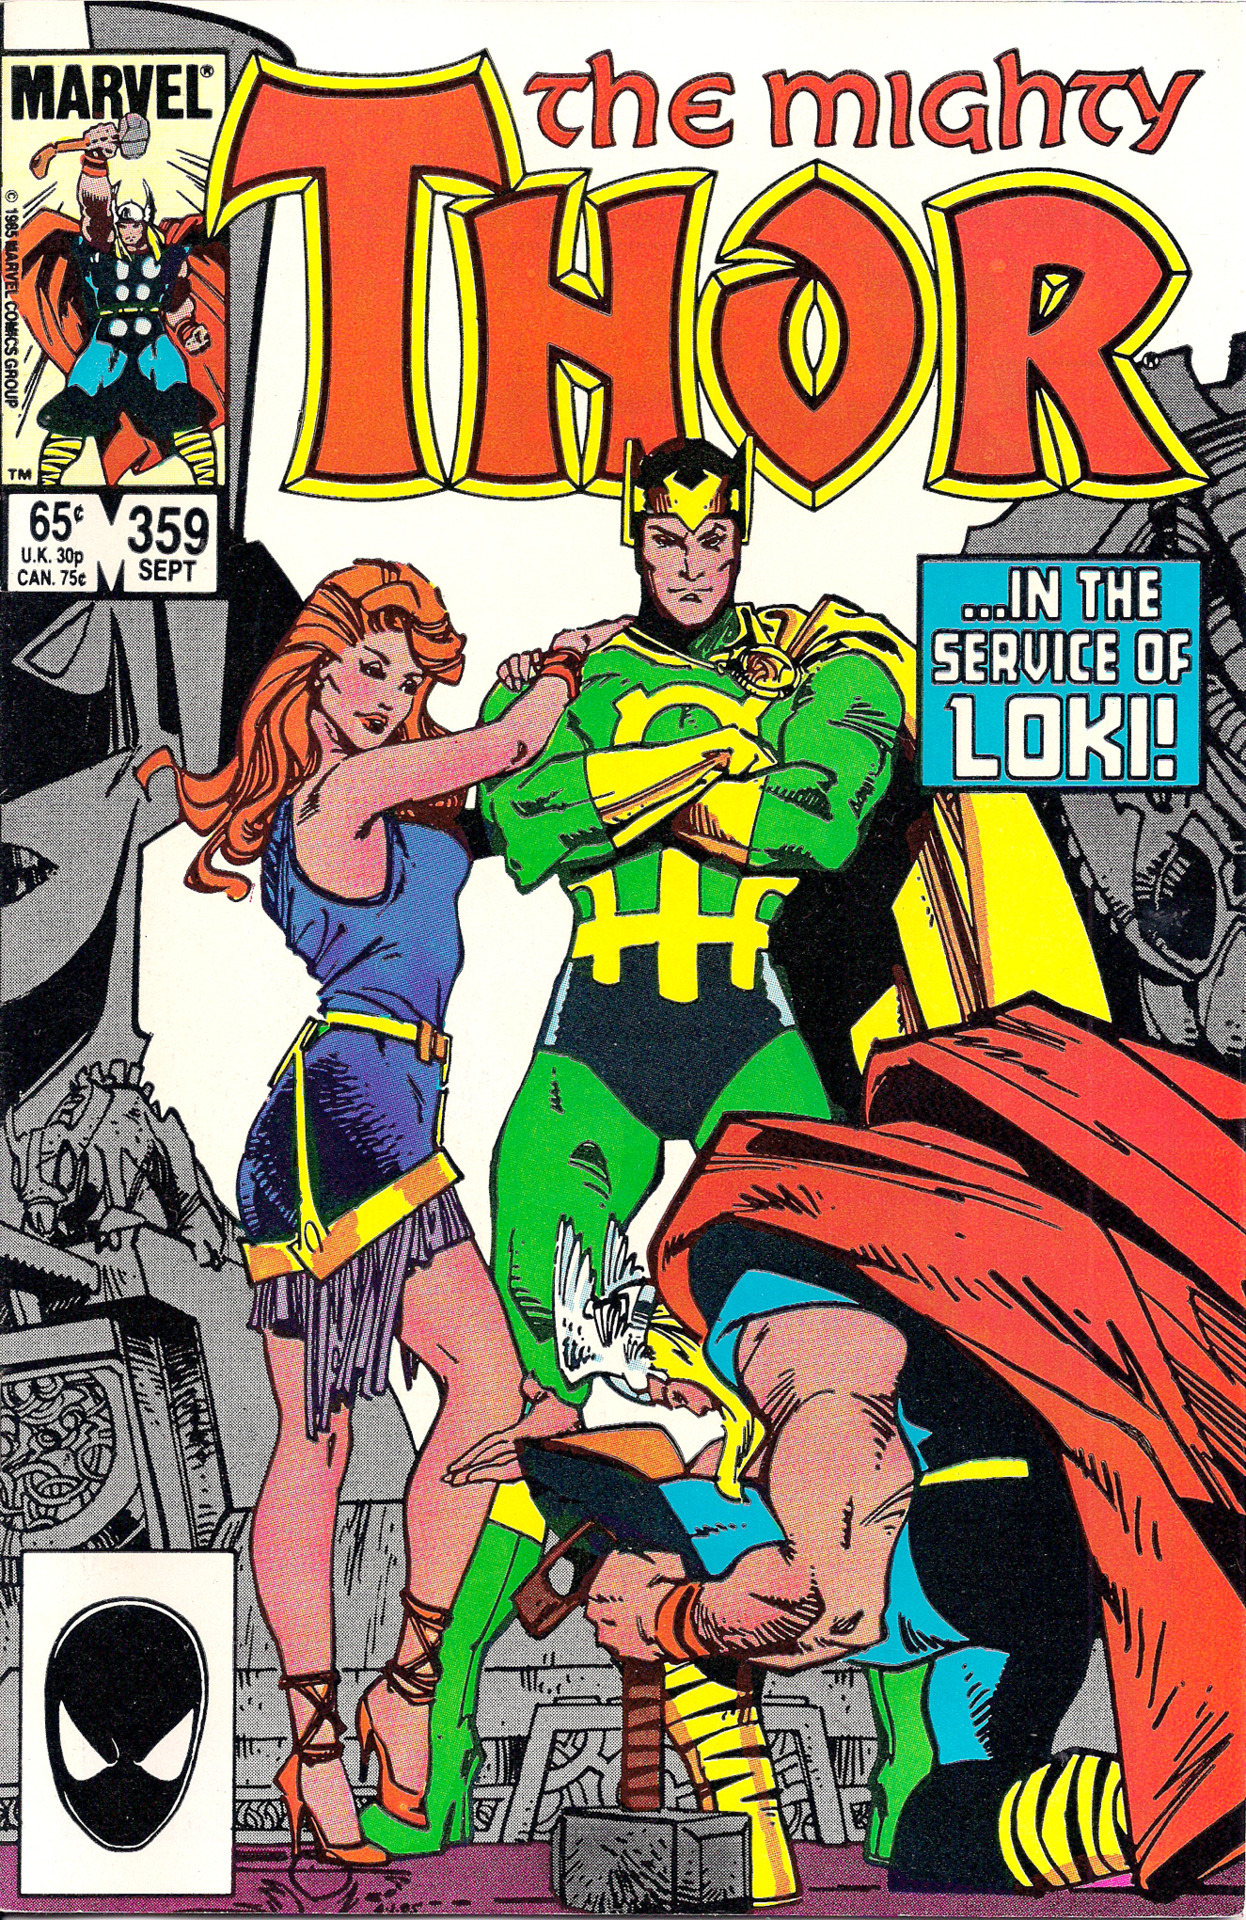 mosellegreen:  guardtristan:  archivovivo:  Thor 359 (sep 1985) Art and Story: Walt Simonson  #i just noticed that loki is wearing heels  If only I could hope this issue was all the cover implies. But that's why we have fanfiction.